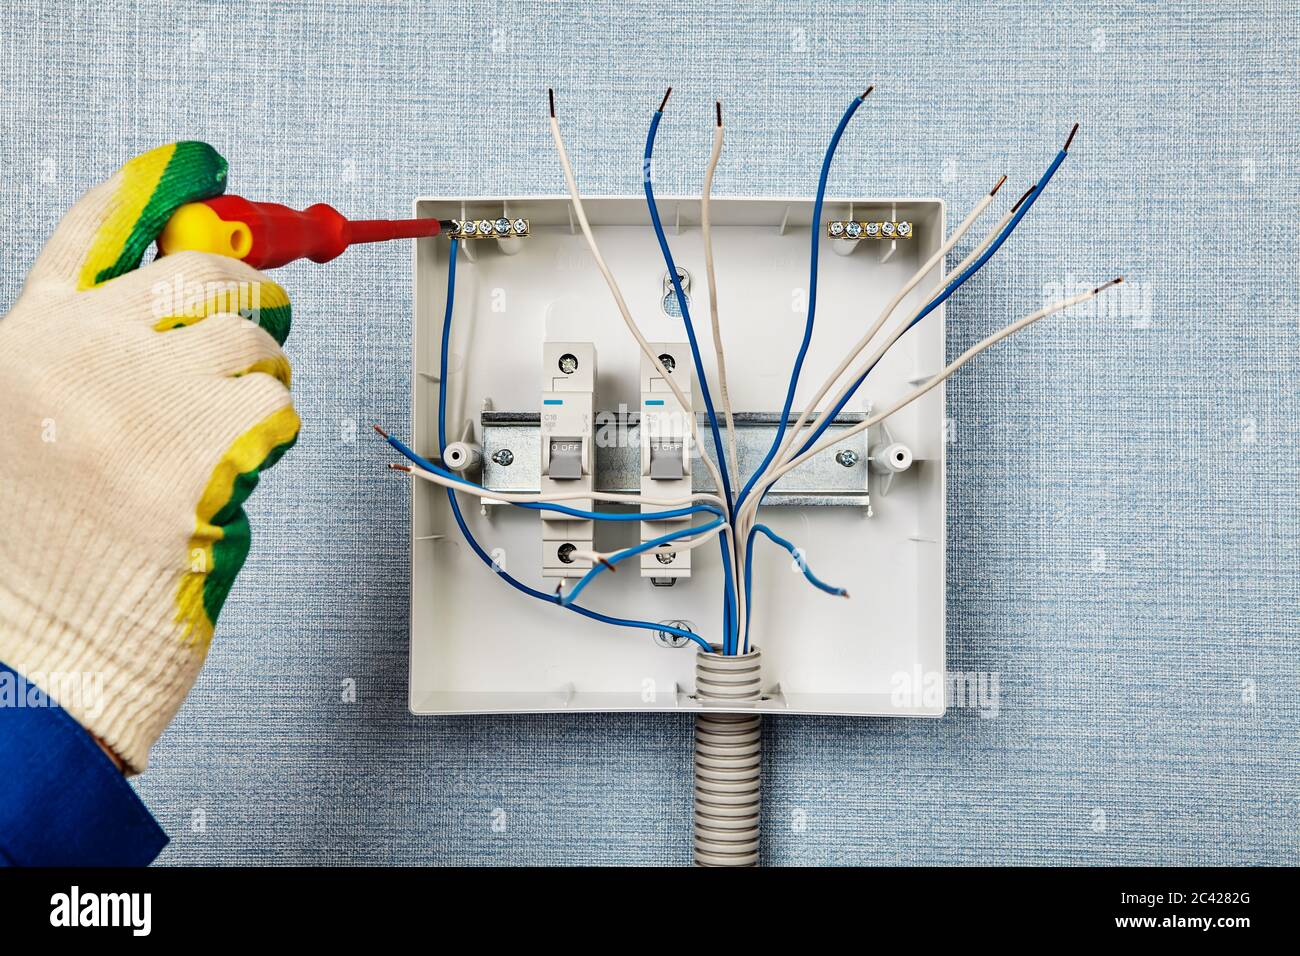 Installation Of A Switchboard Or Consumer Unit An Electrician Secures A Copper Wire To A Neutral Bar The Installer Installs A Fuse Box Or Circuit B Stock Photo Alamy